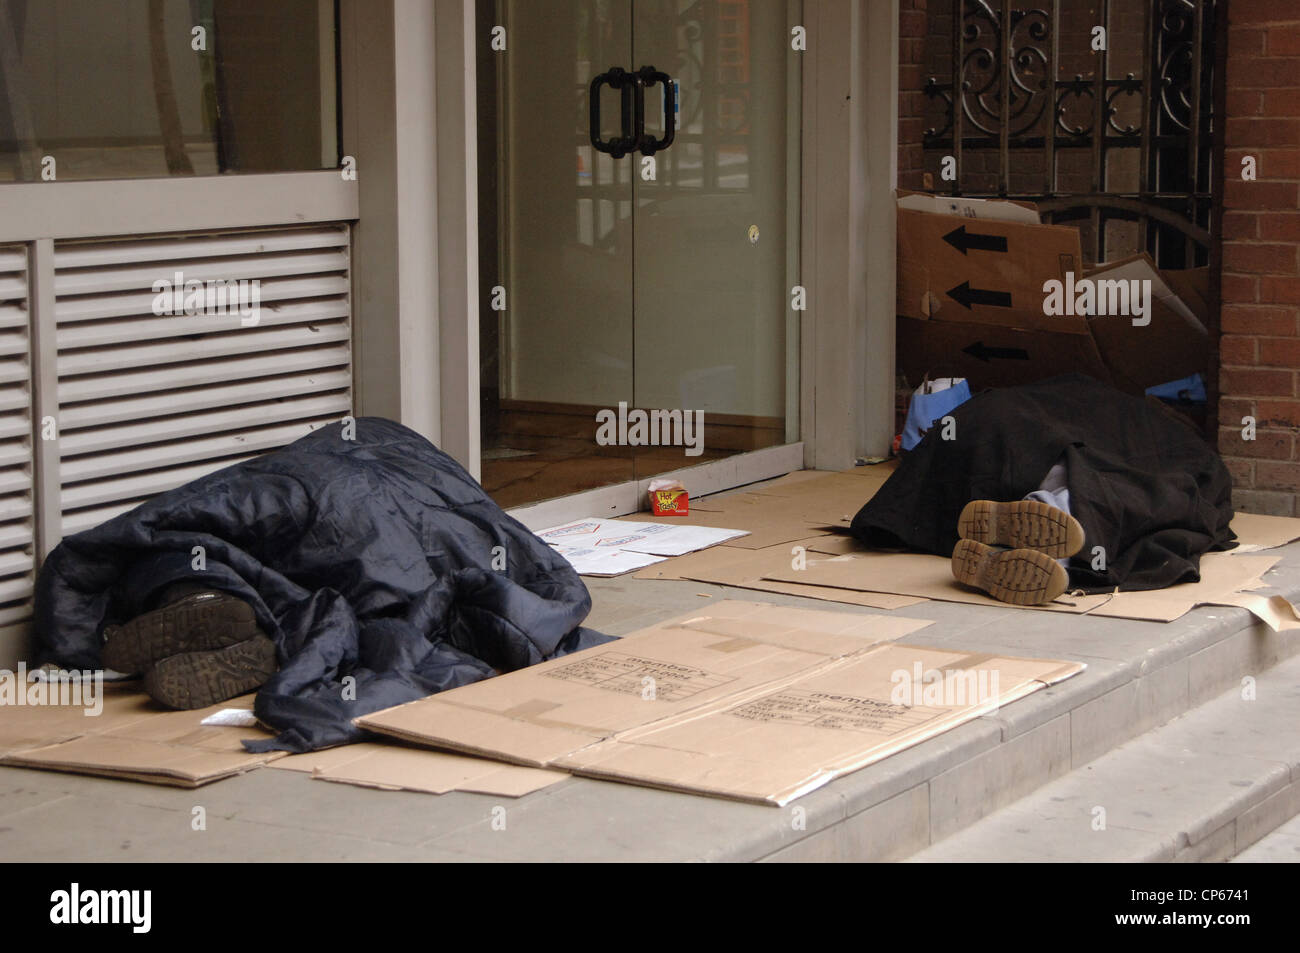 United Kingdom. London. Homeless sleeping in the doorway of a building. - Stock Image